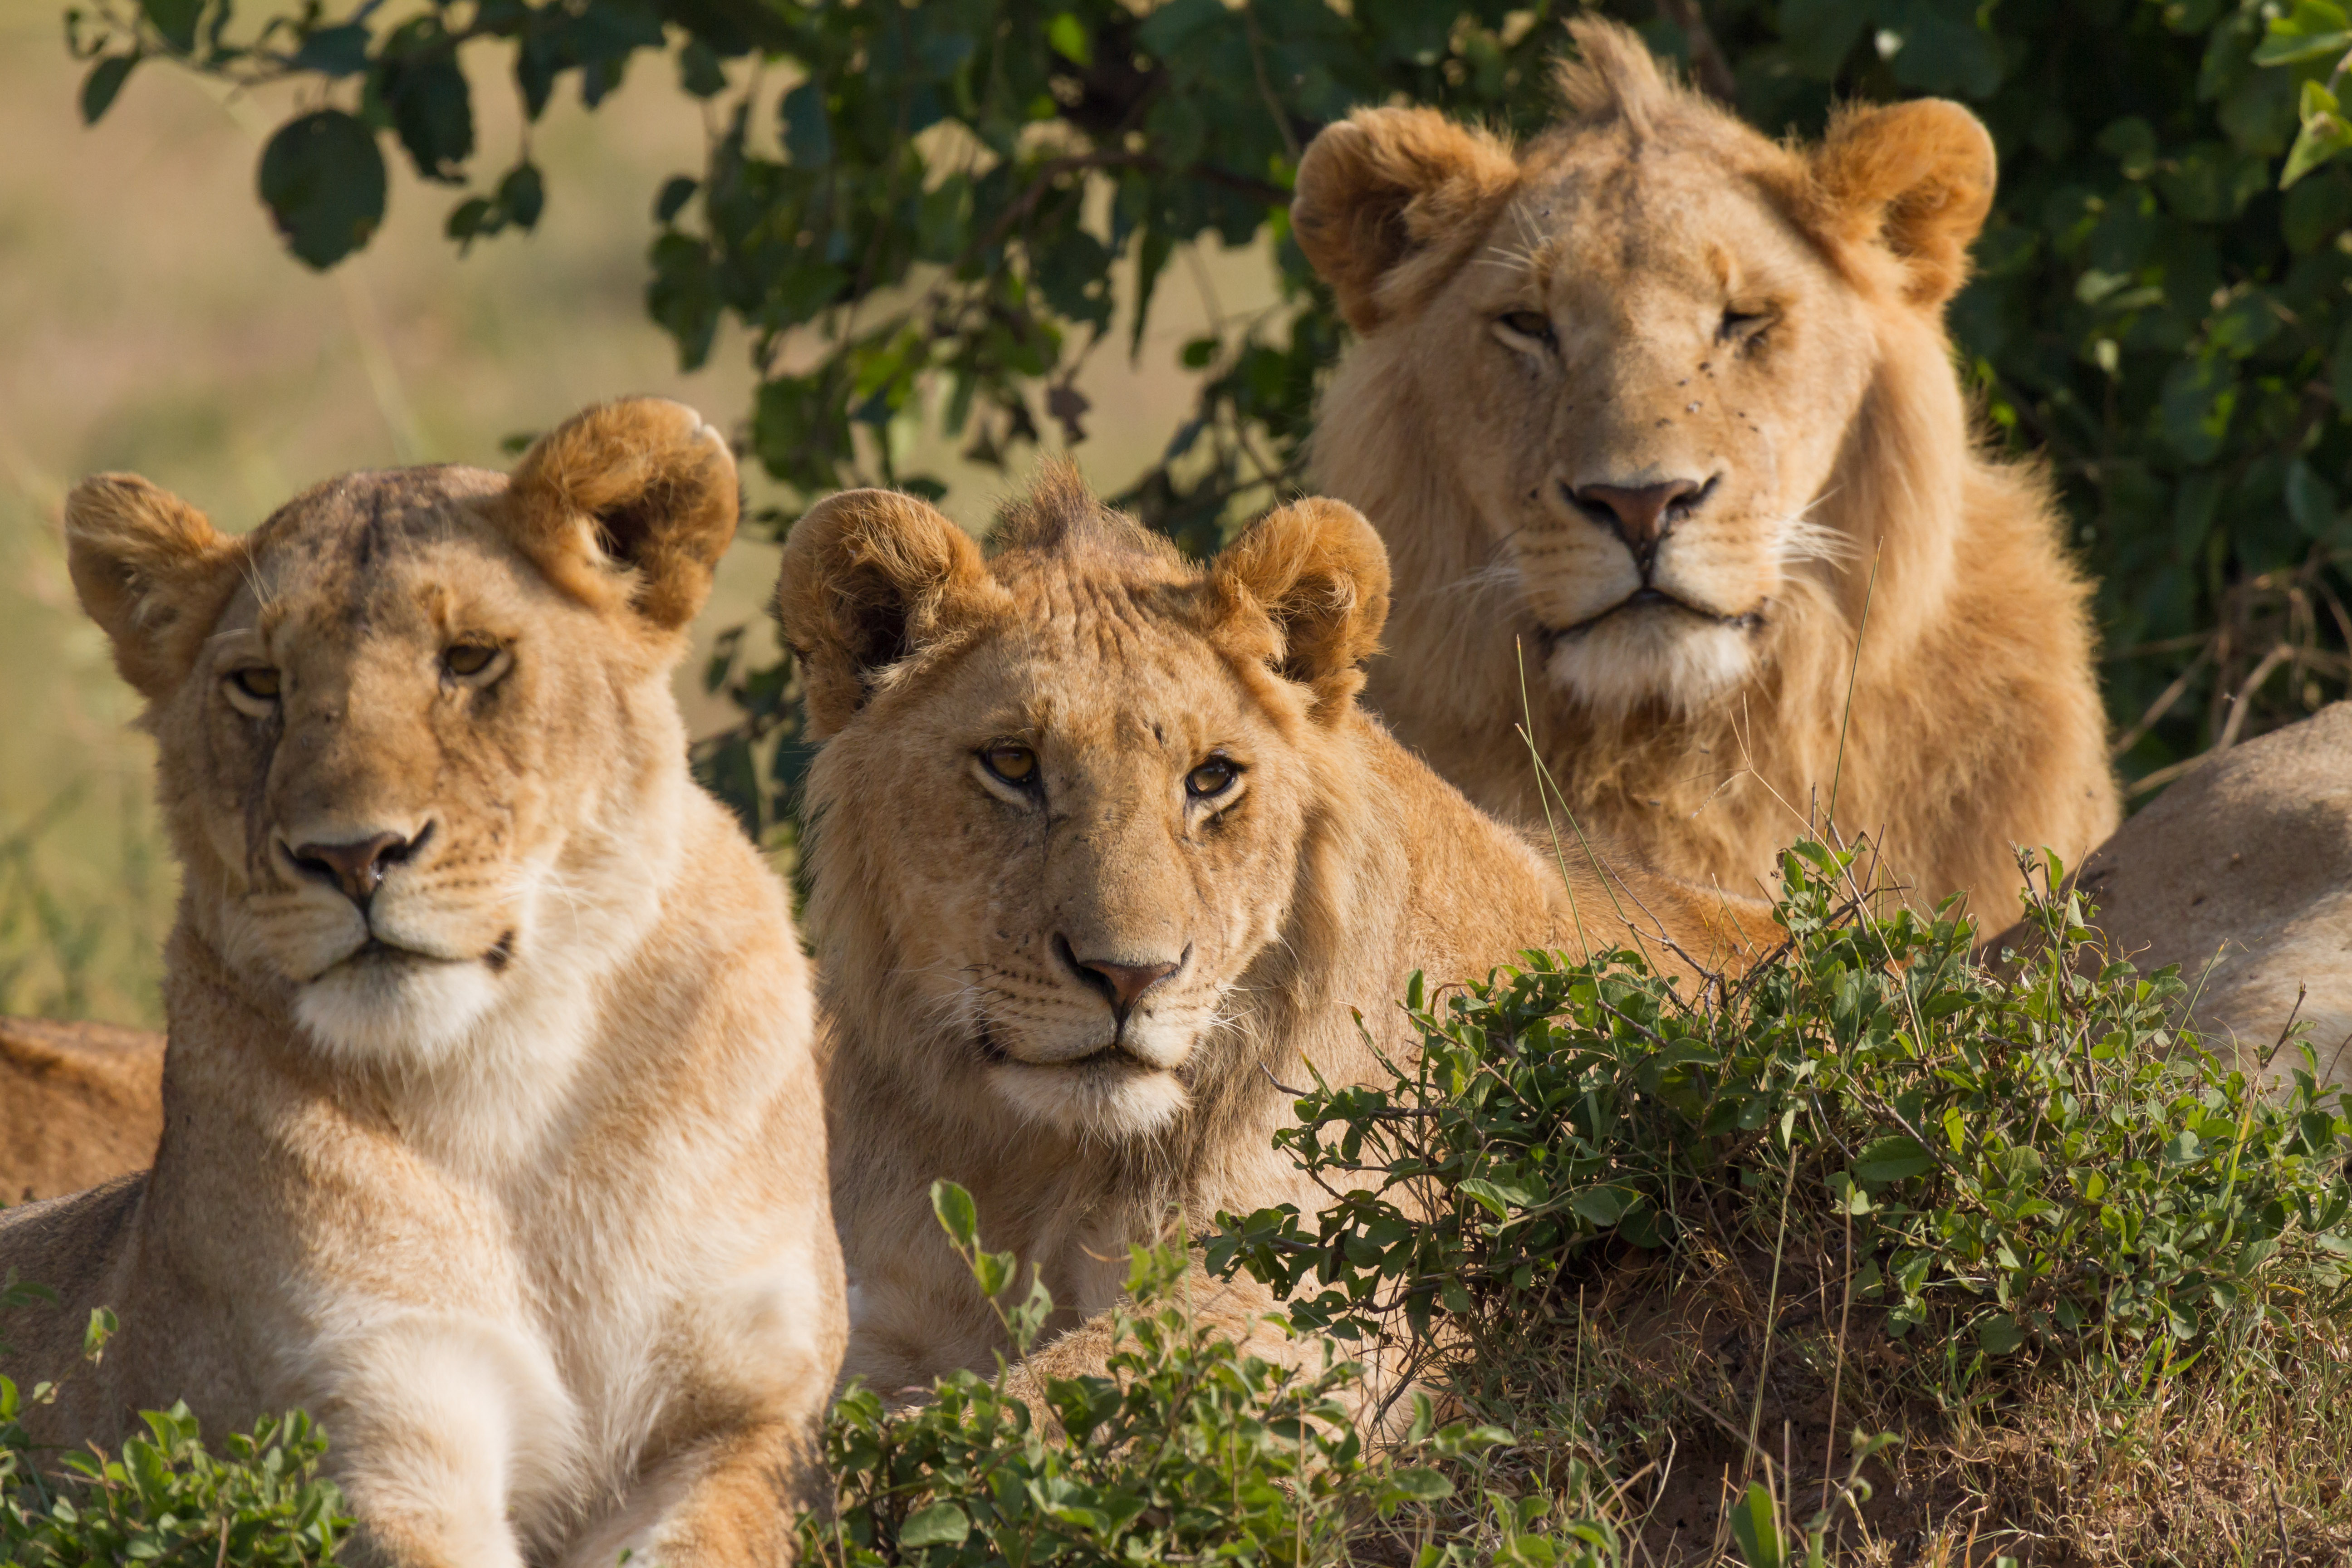 Family picture of three lions. Taken in Masai Mara national park, southwest Kenya.